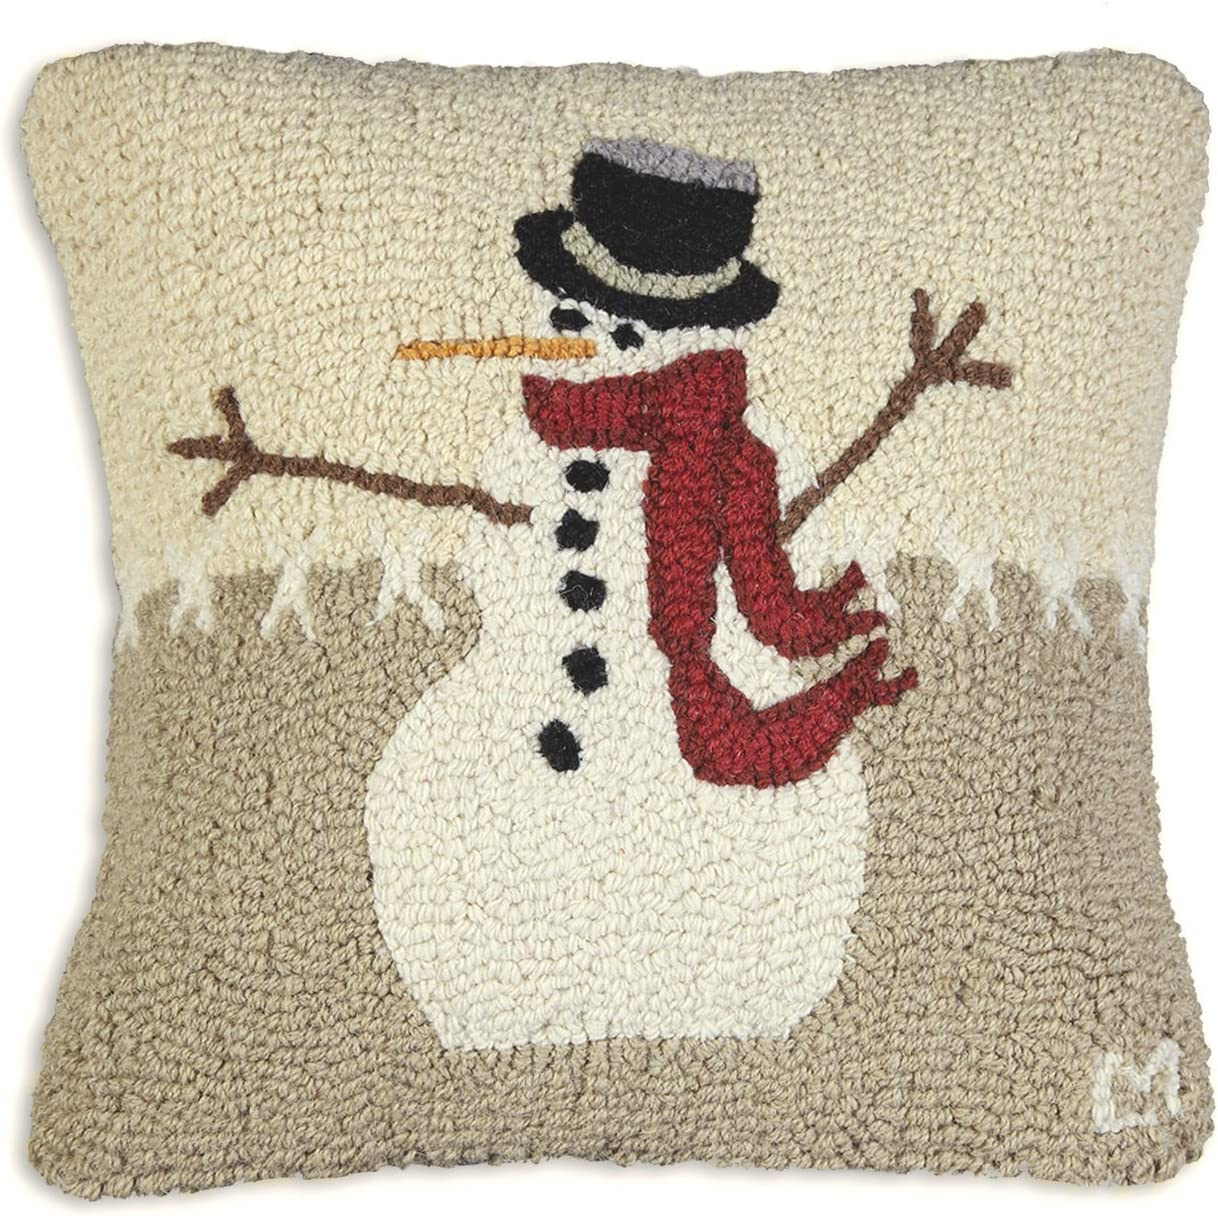 Chandler 4 Corners Artist-Designed Snowman in Stitches Hand-Hooked Wool Decorative Throw Pillow 18 x 18